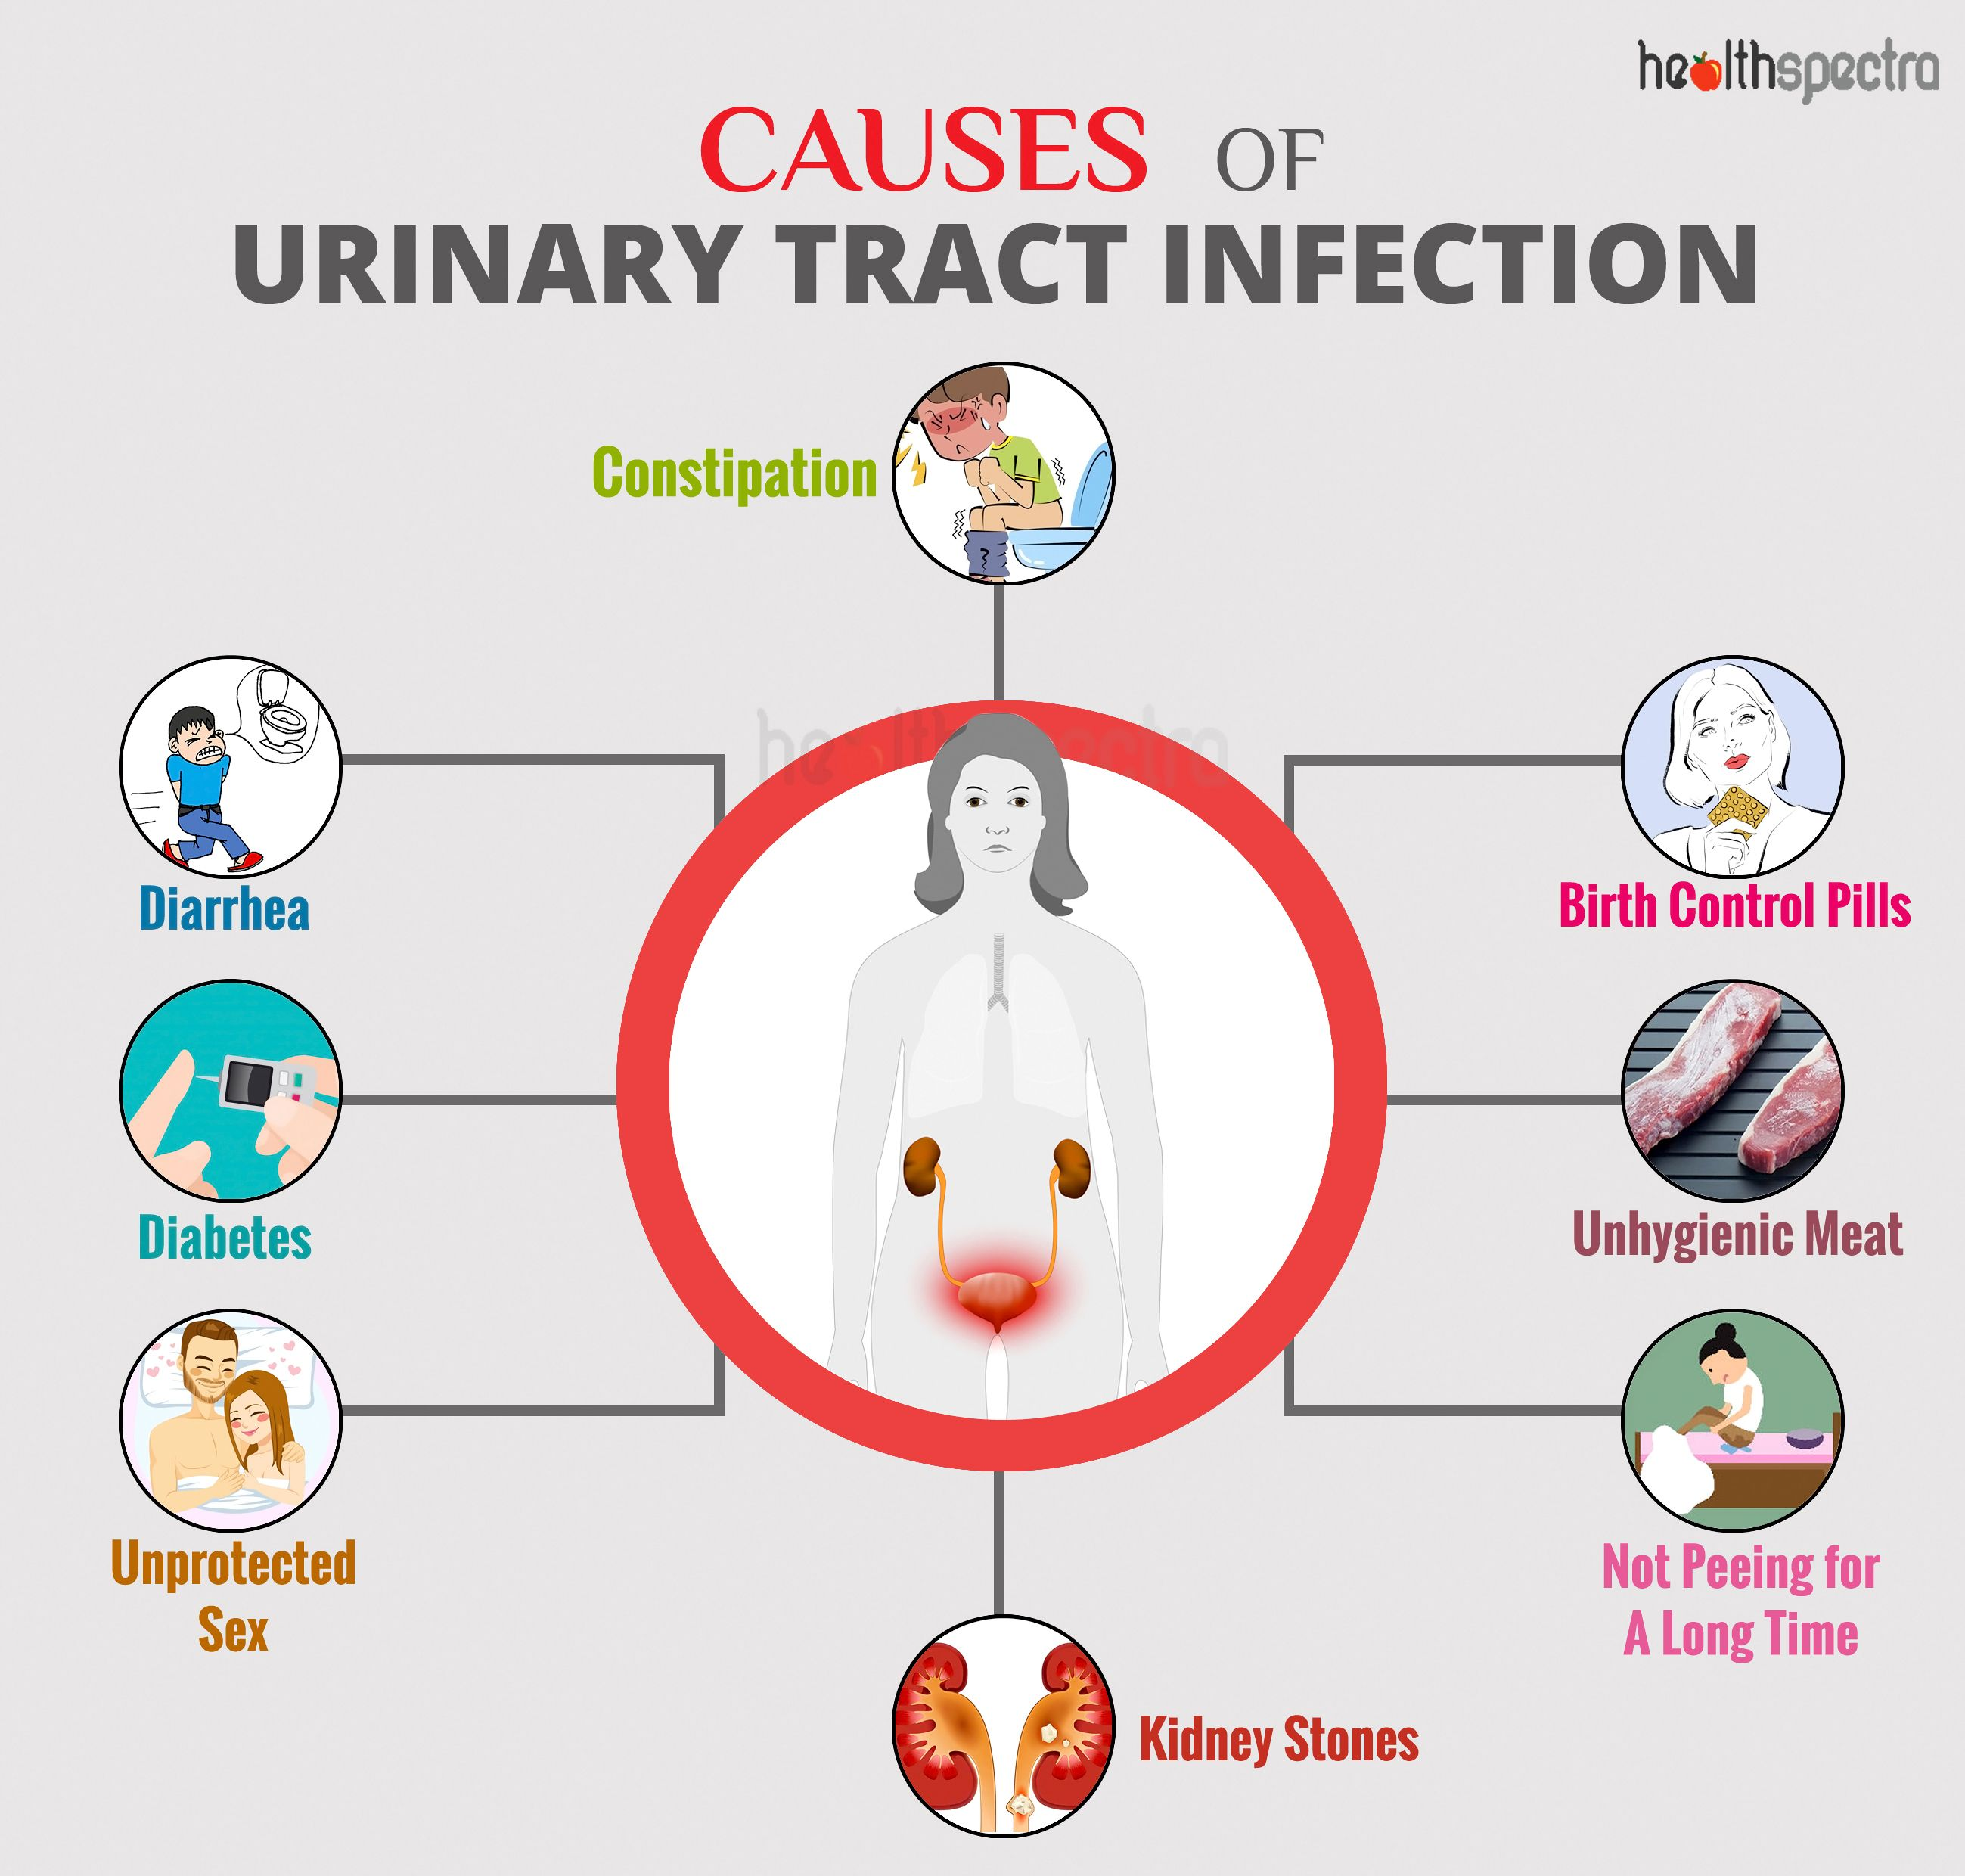 Causes of Urinary Tract Infection